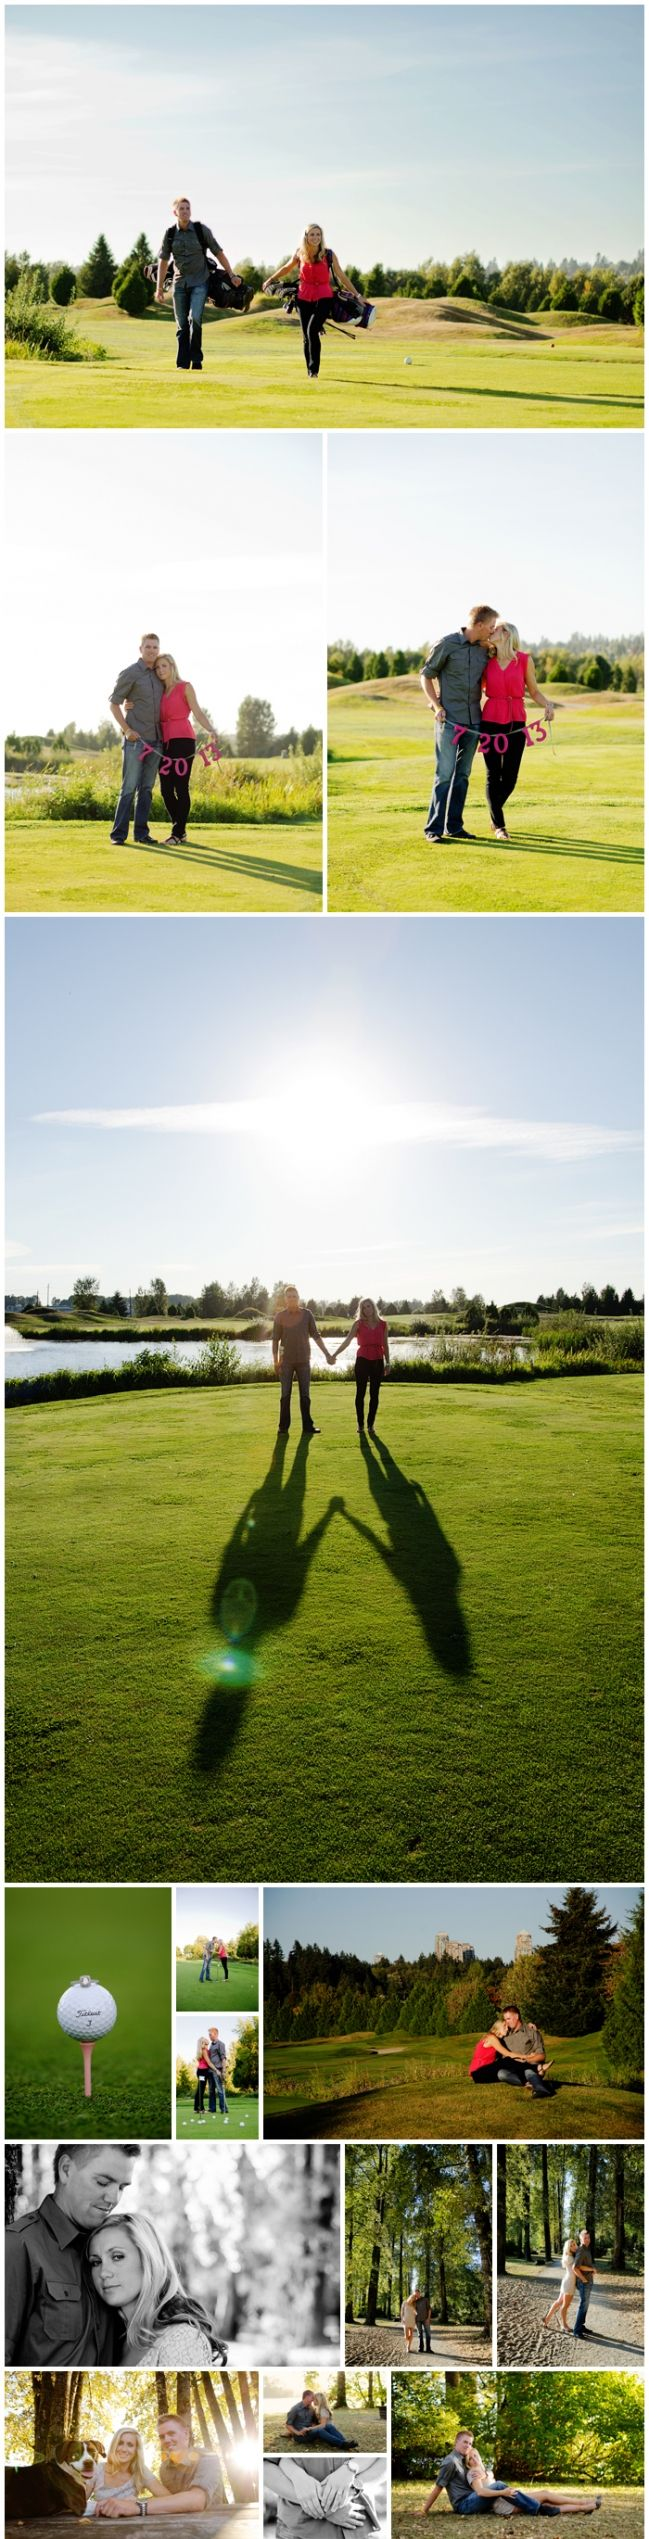 Golf-shadows-dog-engagement-love #golfengagementsession #engagementphotography  #weddingphotography